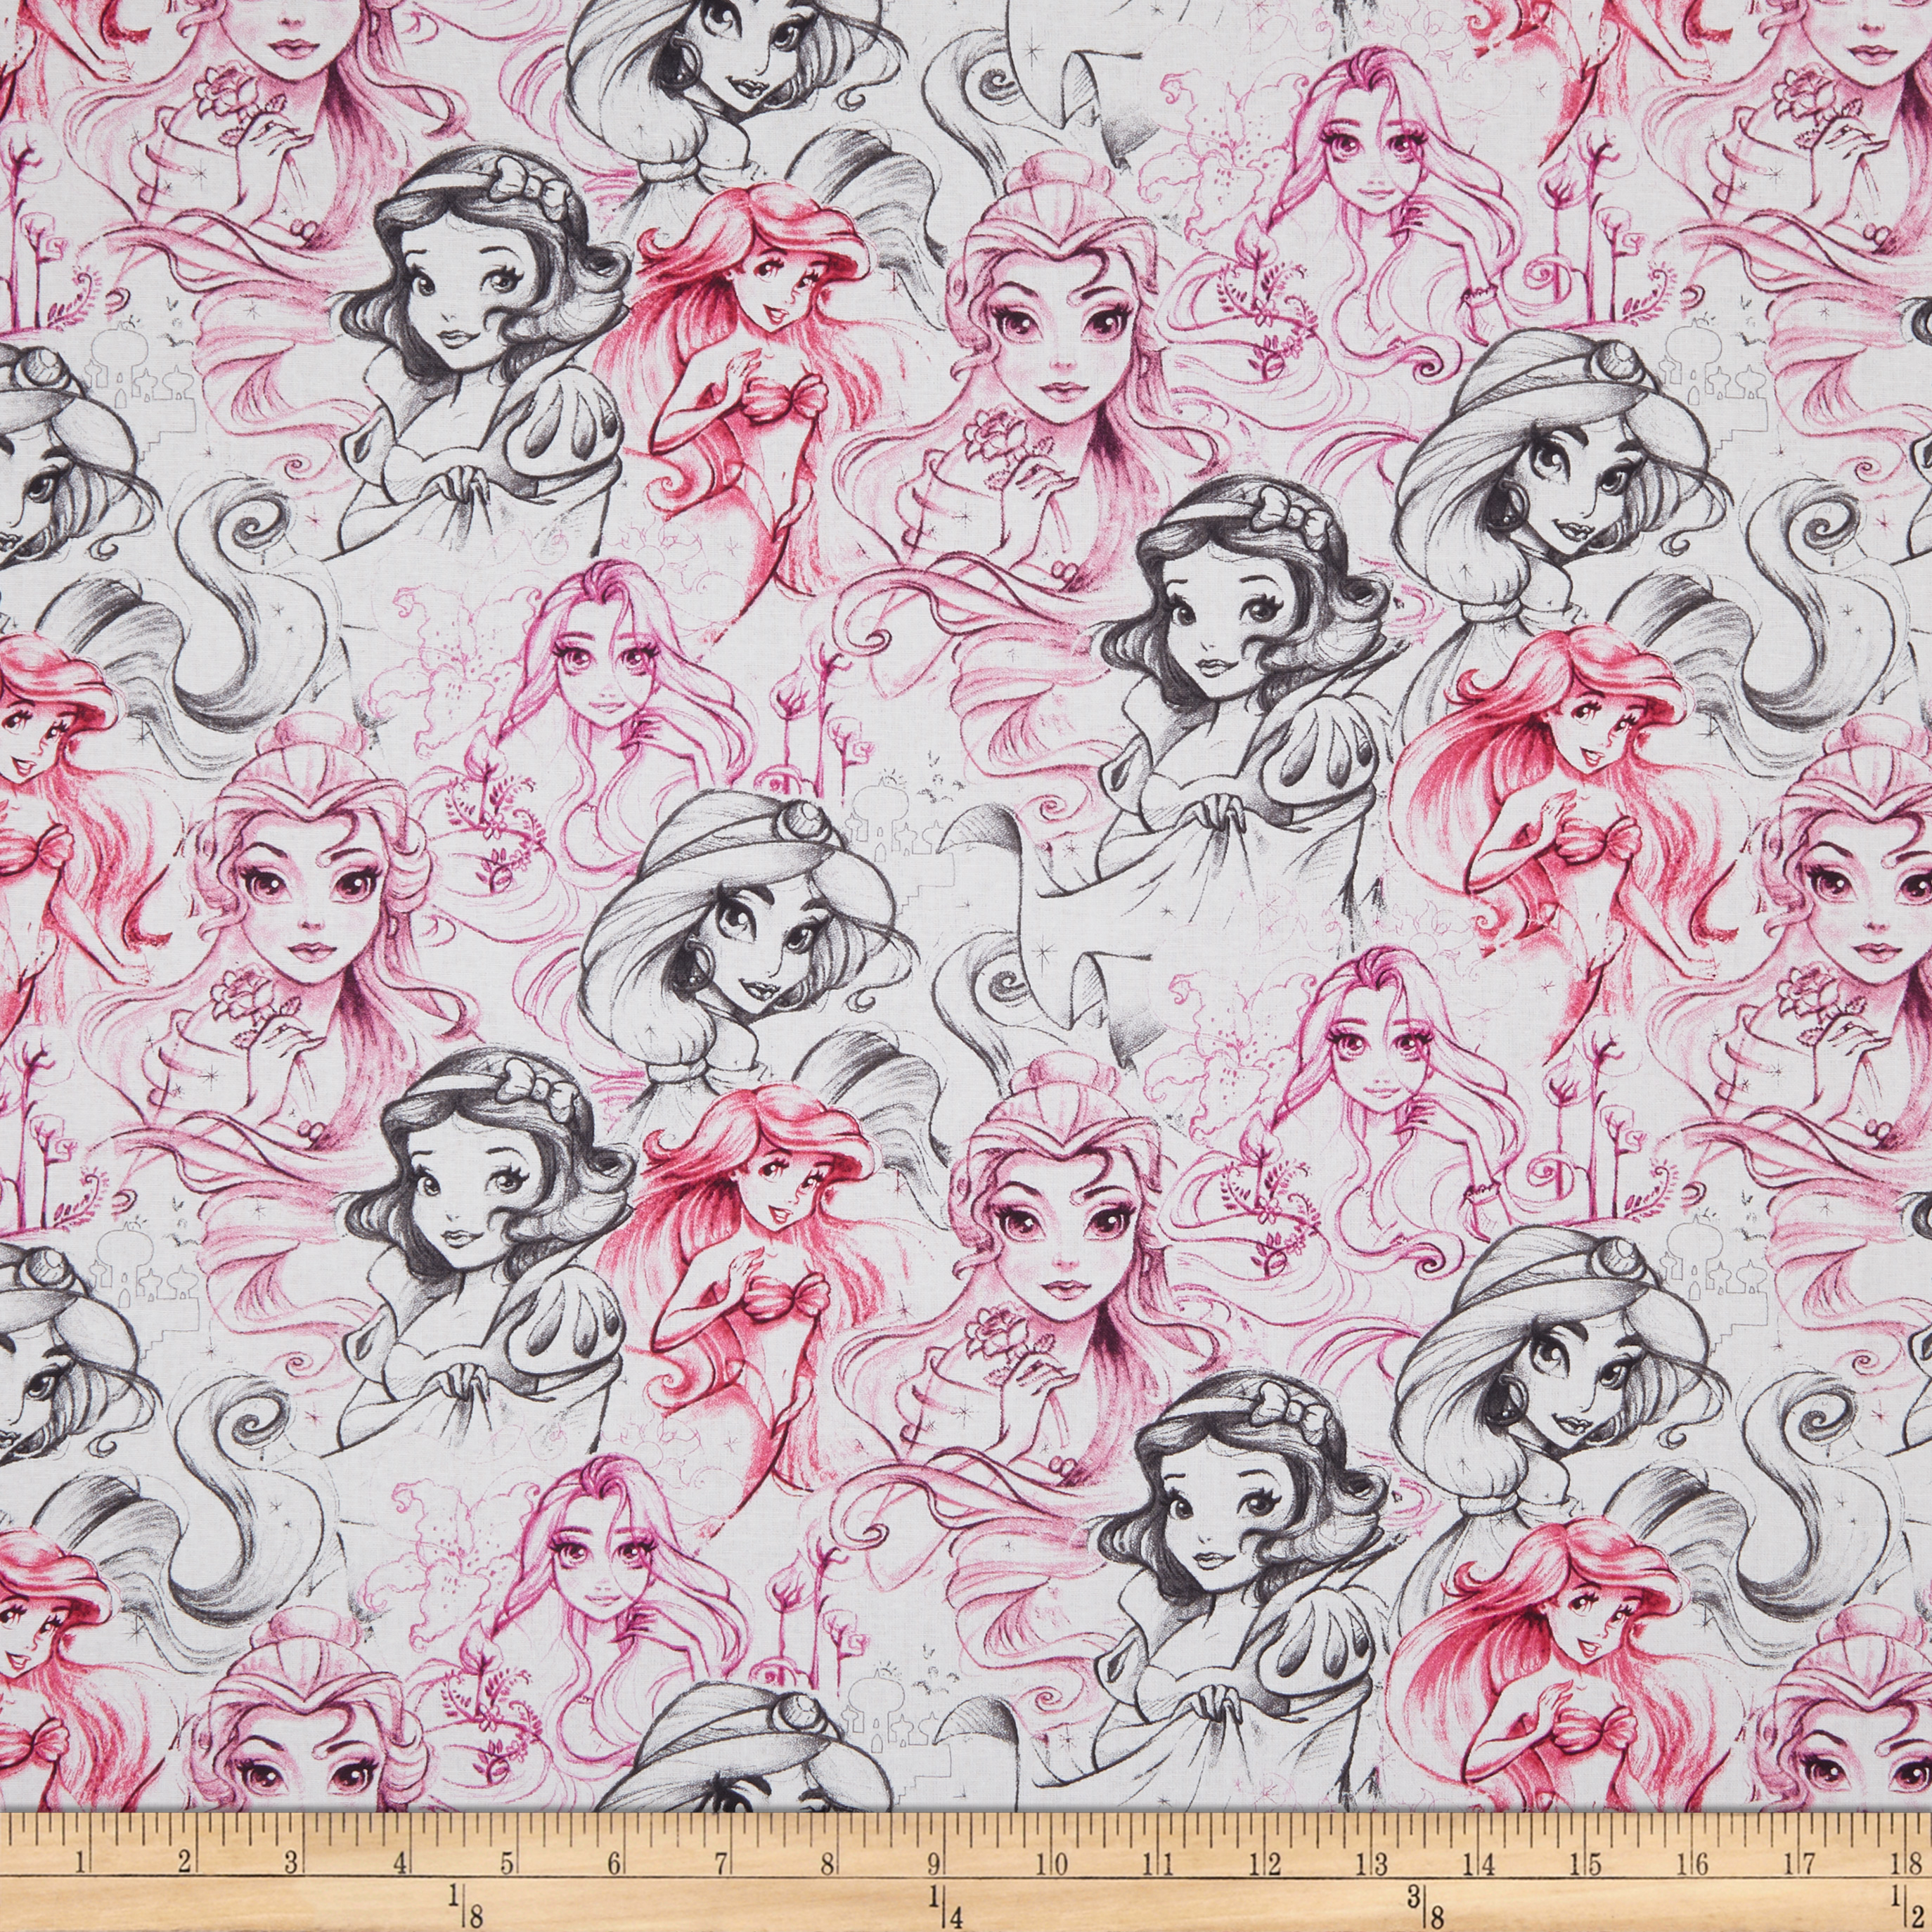 Disney Princess Enchanting Stores Princess Sketch Hot Pink Fabric